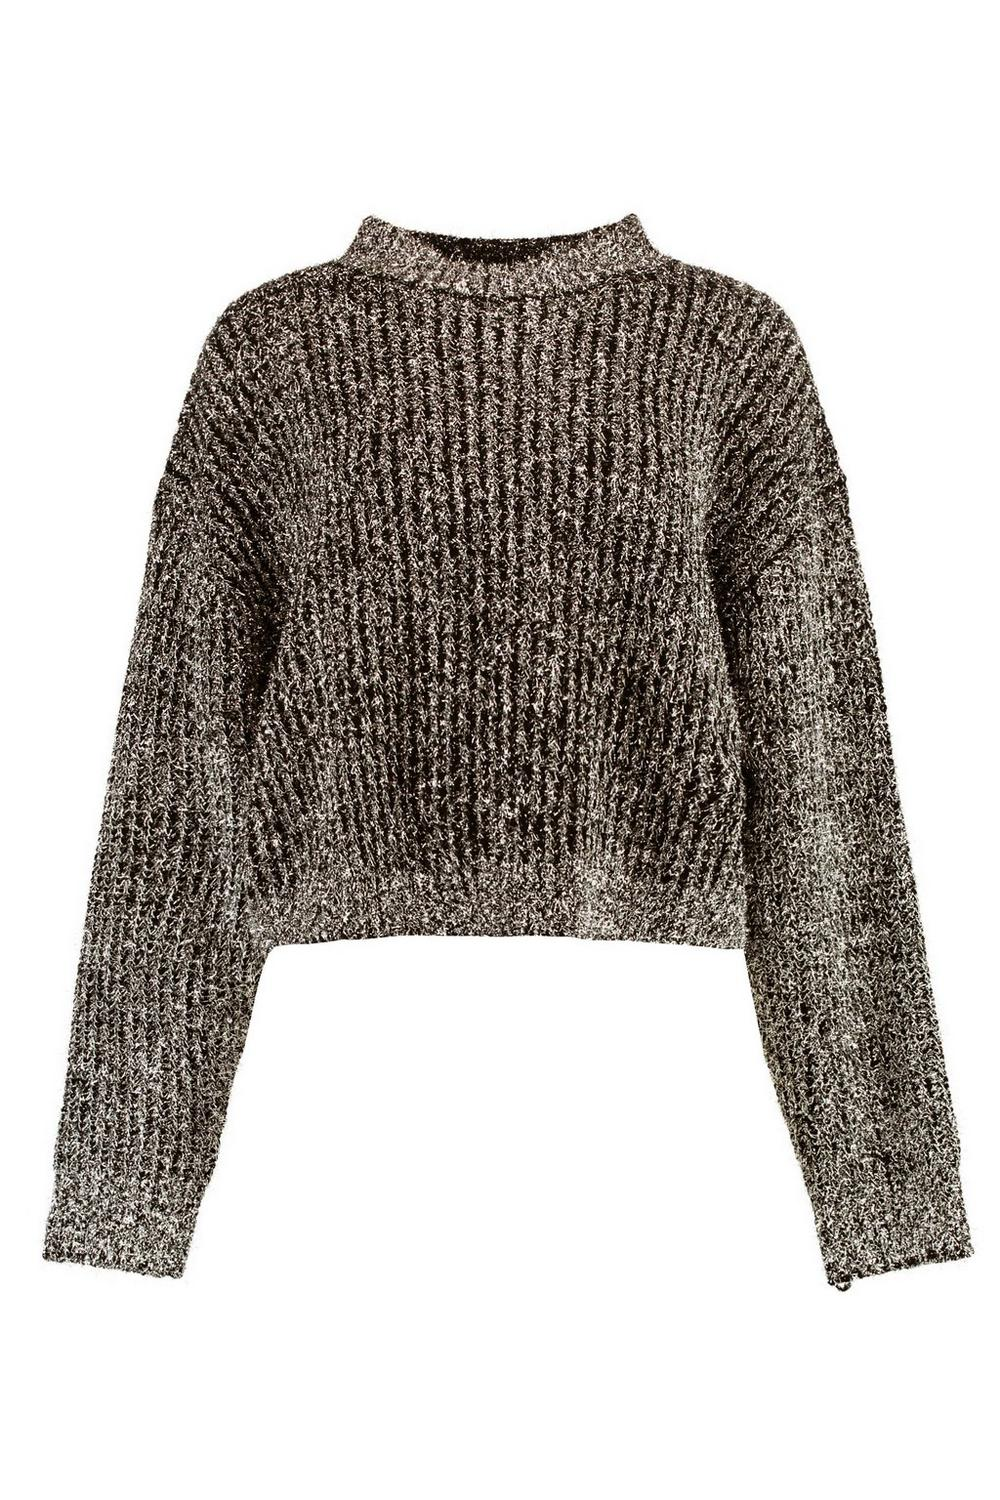 Tinsel Jumper Tinsel Metallic Metallic gold Knit rqfgrCw